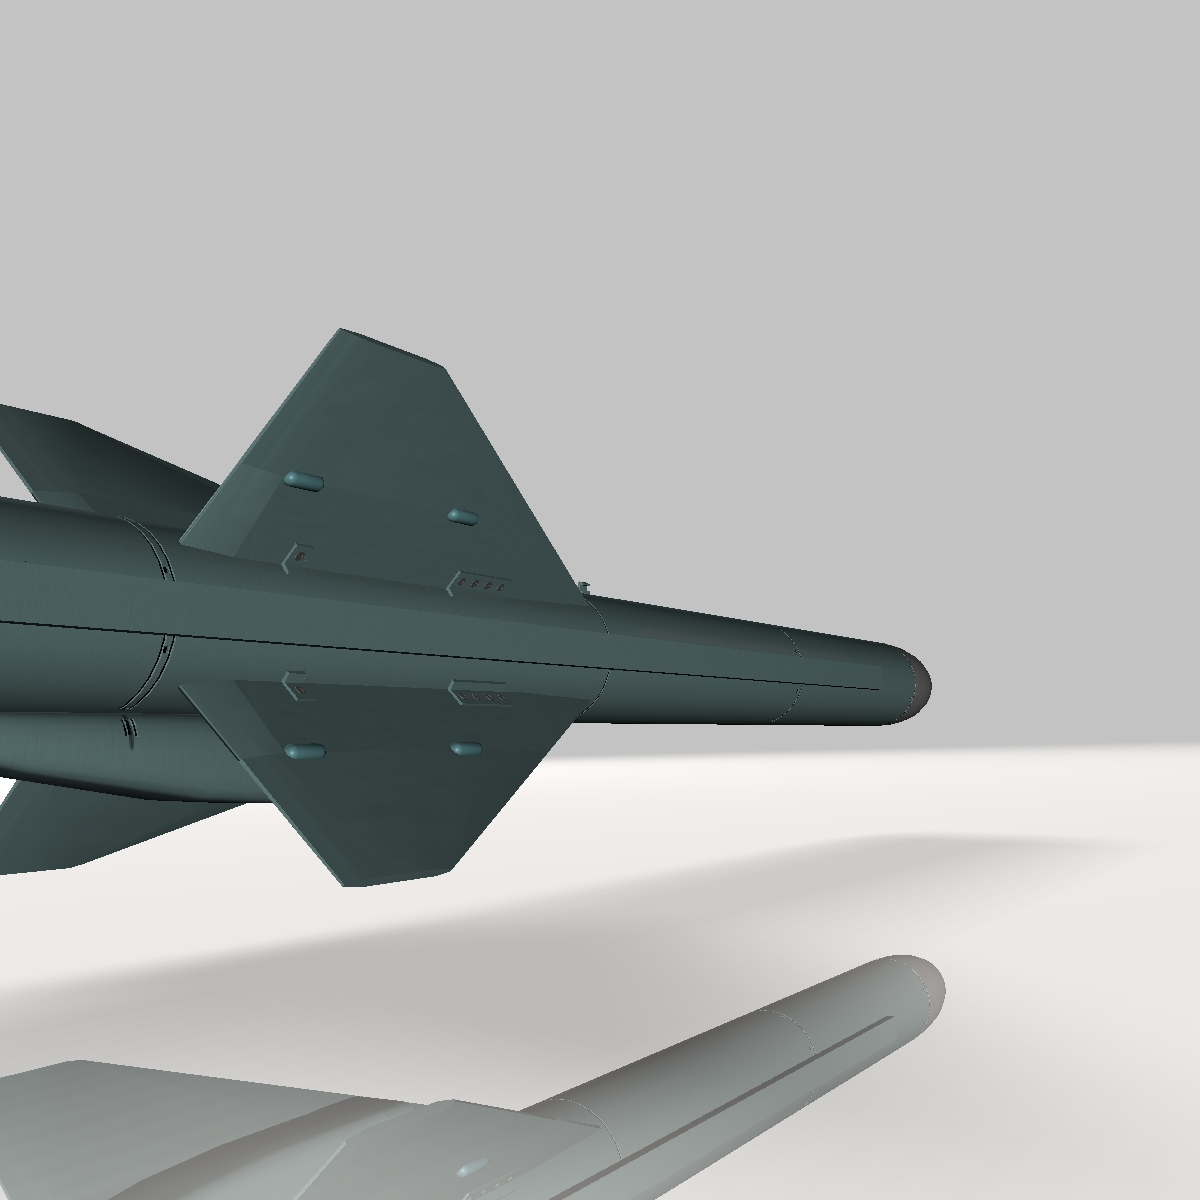 iranian qader cruise missile 3d model 3ds dxf x cod scn obj 149356